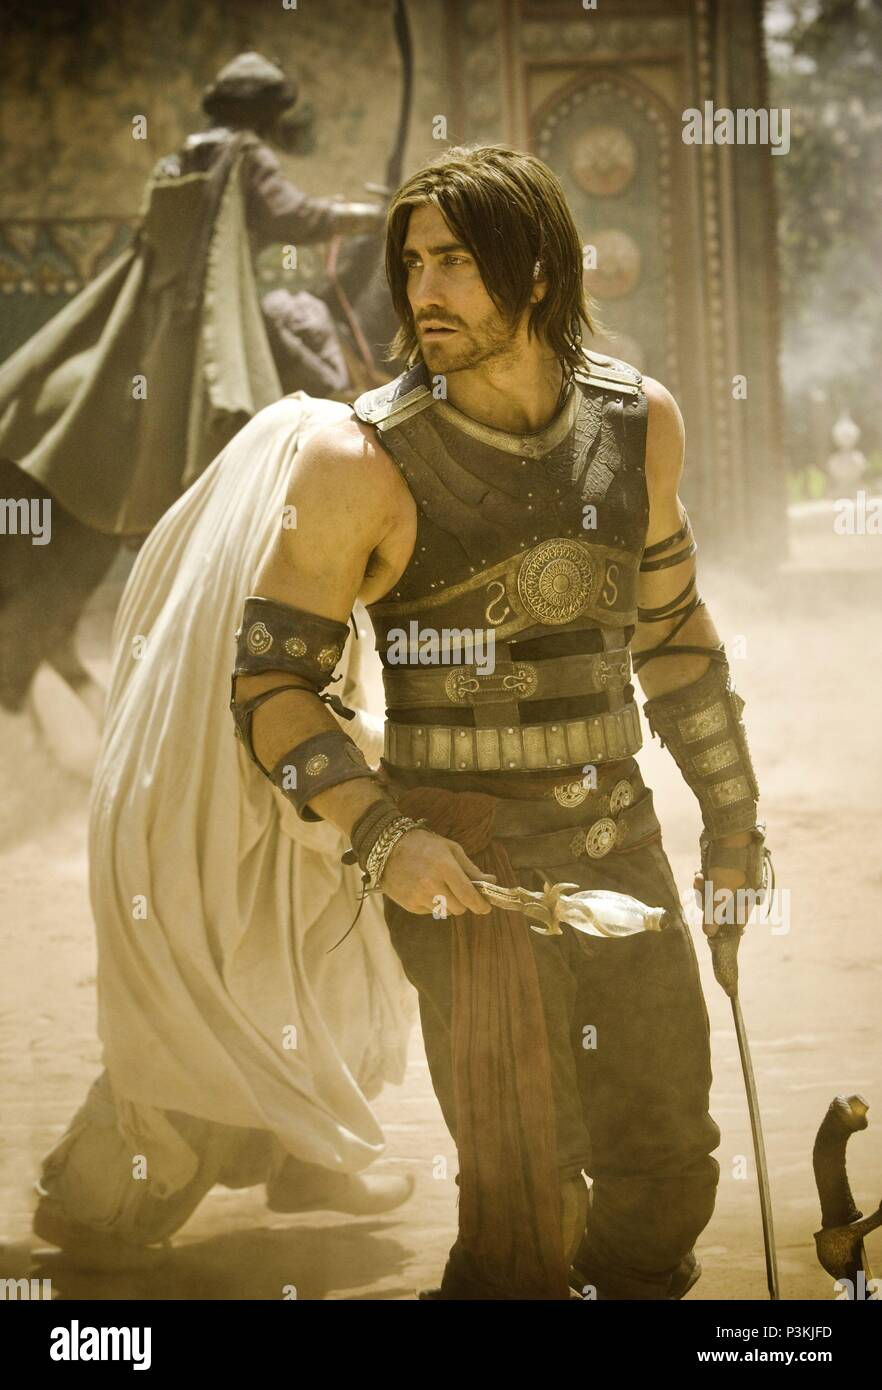 Original Film Title Prince Of Persia The Sands Of Time English Title Prince Of Persia The Sands Of Time Film Director Mike Newell Year 2010 Stars Jake Gyllenhaal Credit Walt Disney Pictures